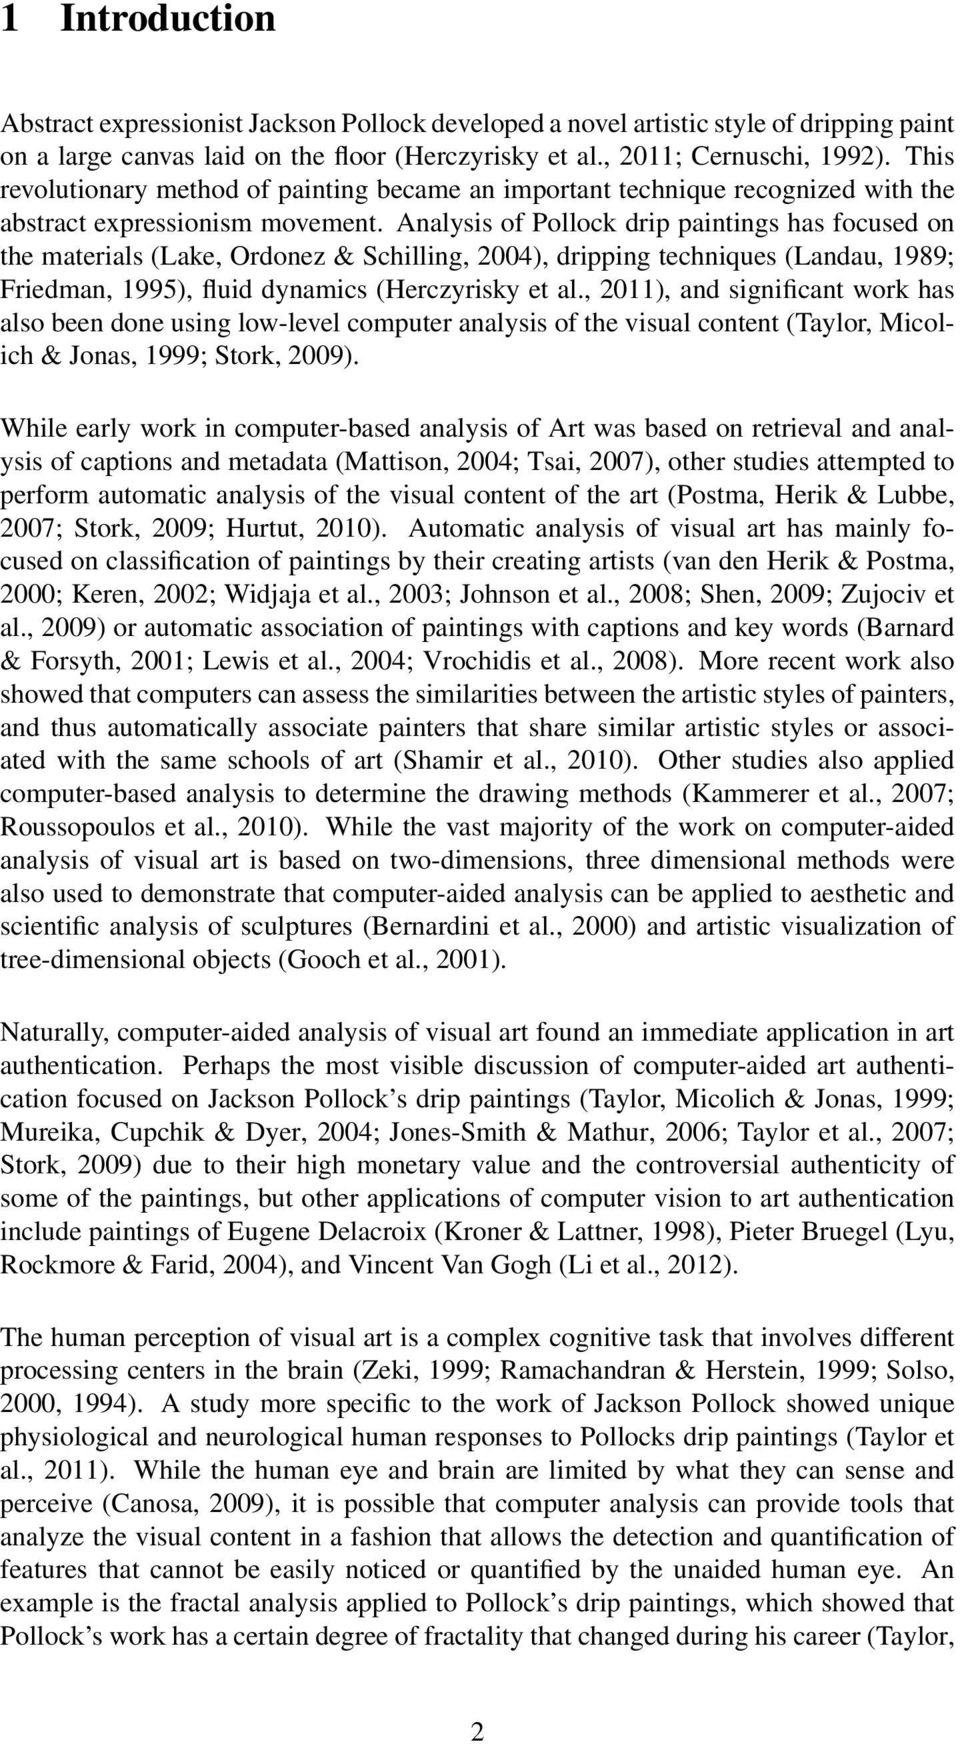 Analysis of Pollock drip paintings has focused on the materials (Lake, Ordonez & Schilling, 2004), dripping techniques (Landau, 1989; Friedman, 1995), fluid dynamics (Herczyrisky et al.